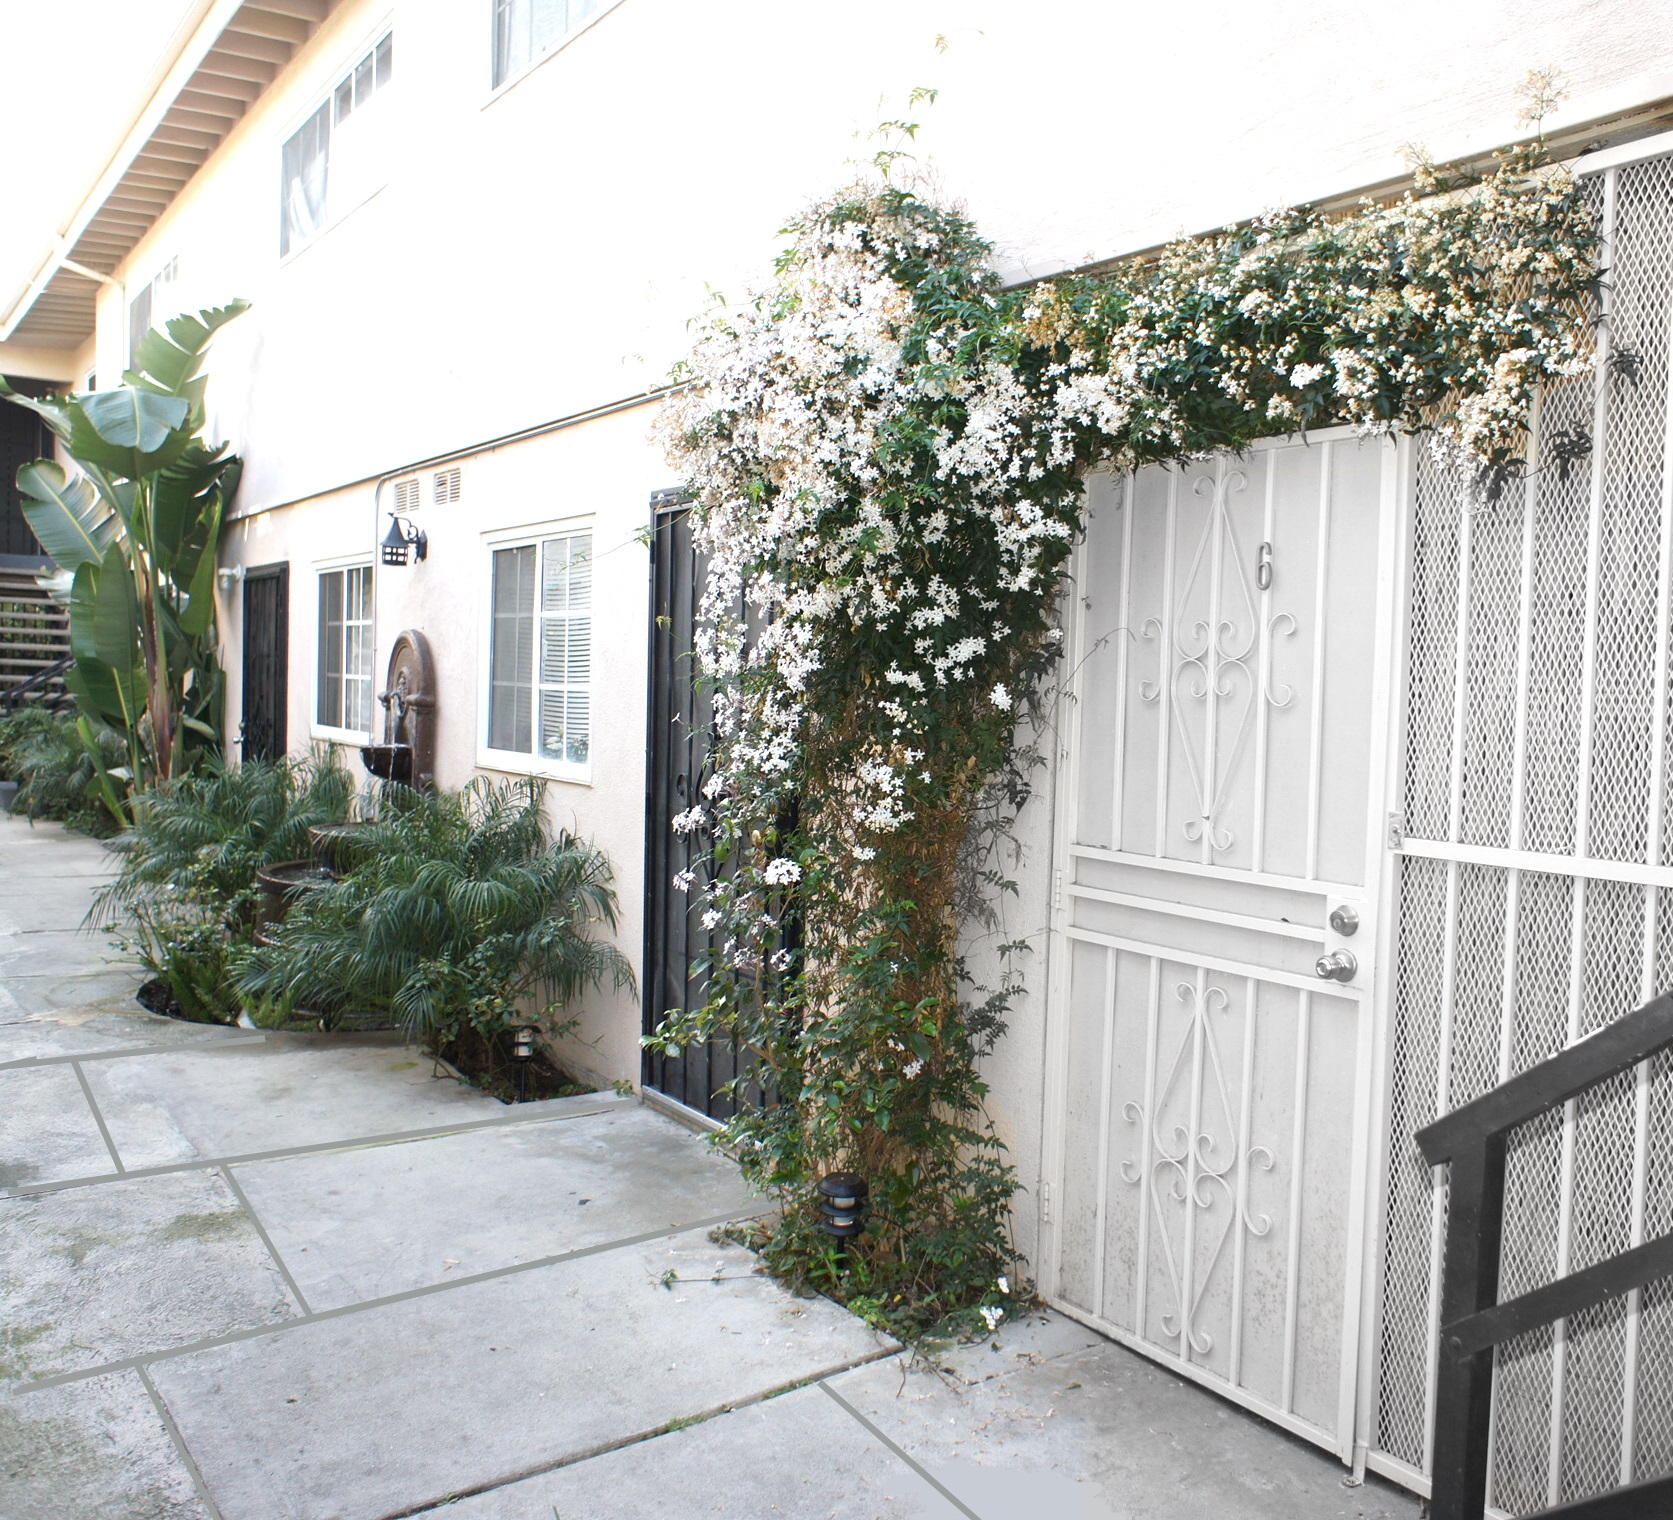 3638 Midvale Ave., Los Angeles, CA 90034